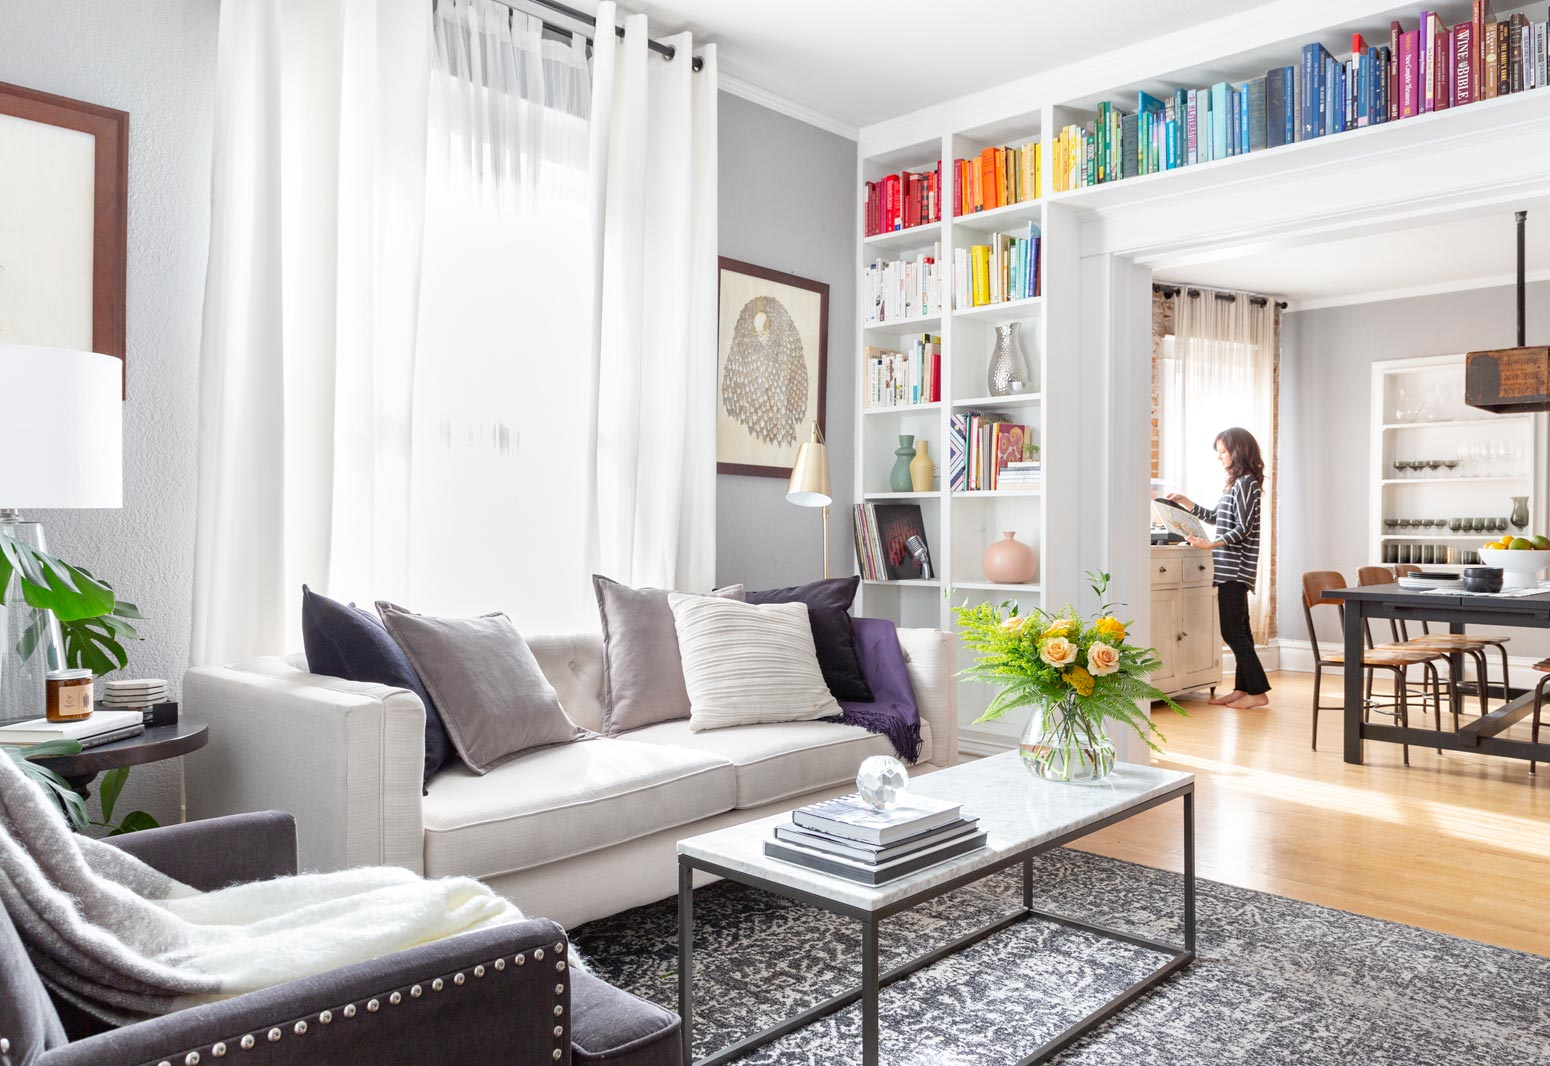 Our Top 10 Benjamin Moore Neutral Paint Colors Havenly S Blog,Natural Mosquito Repellent Plants Indoor